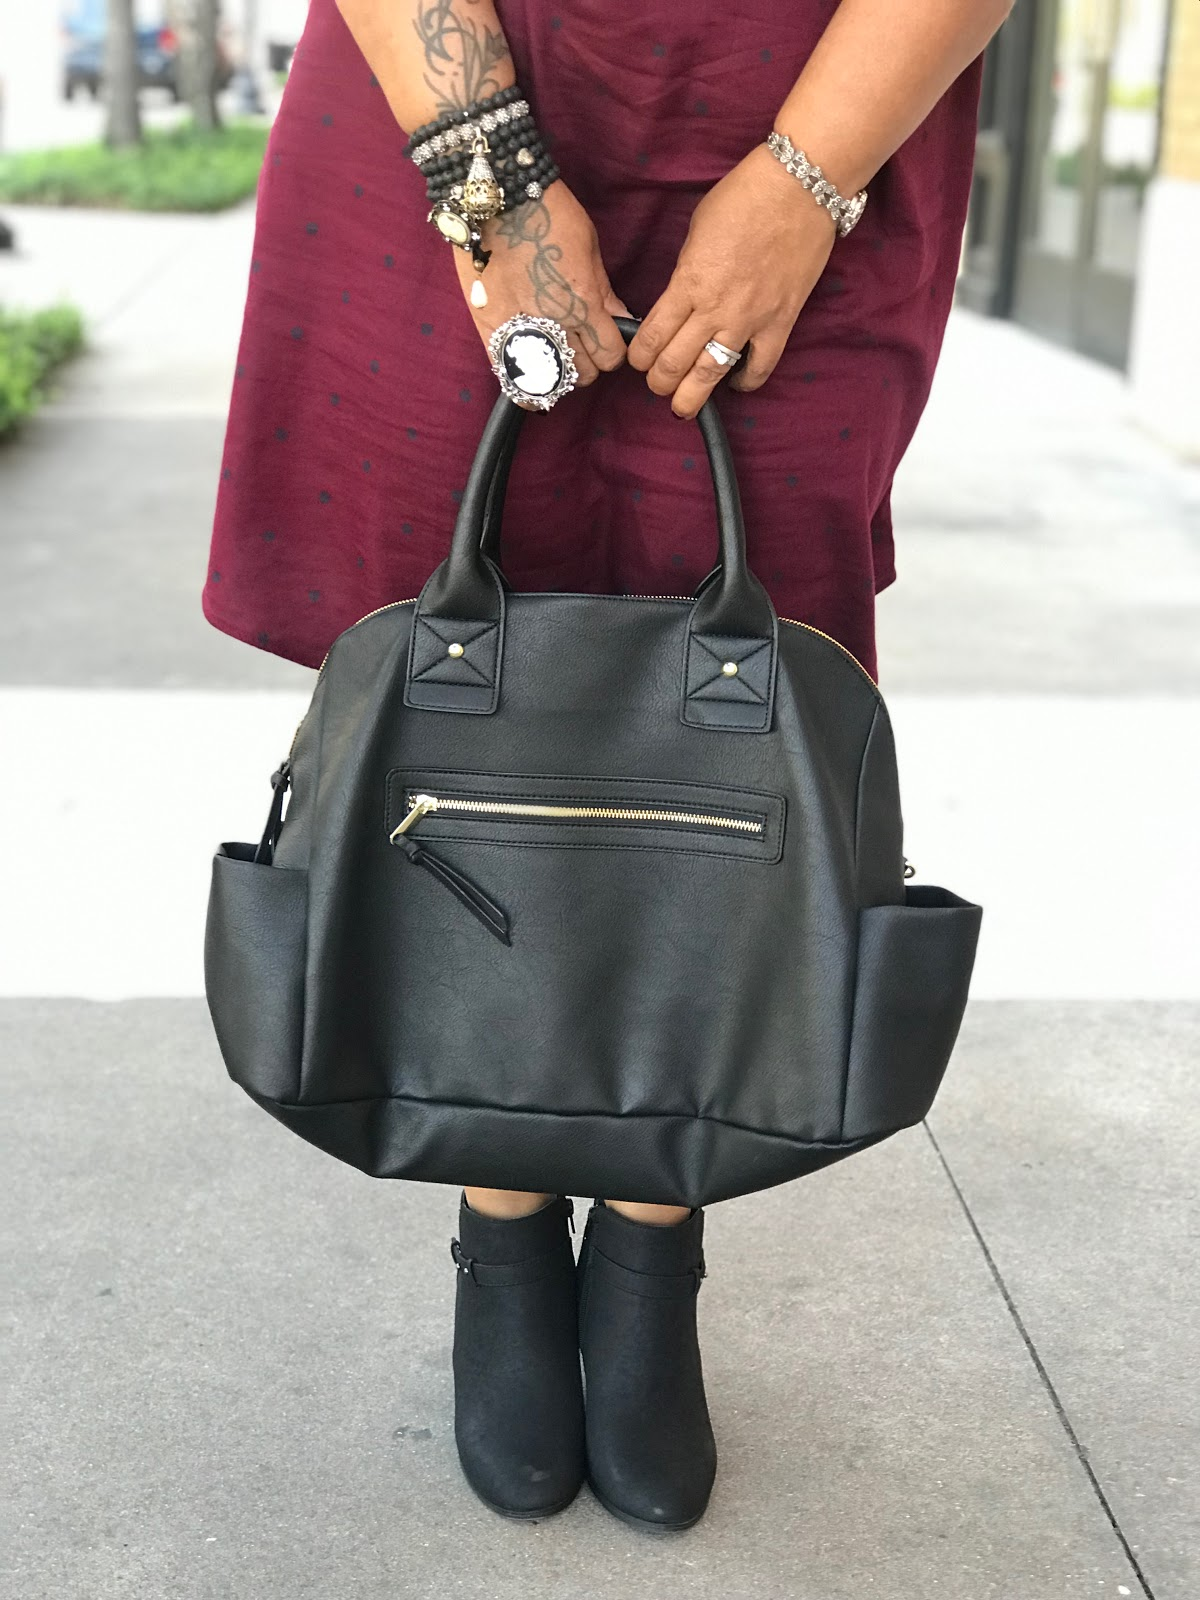 Image: Tangie bell sharing her outfit and handbags she wore to see the intruder movie